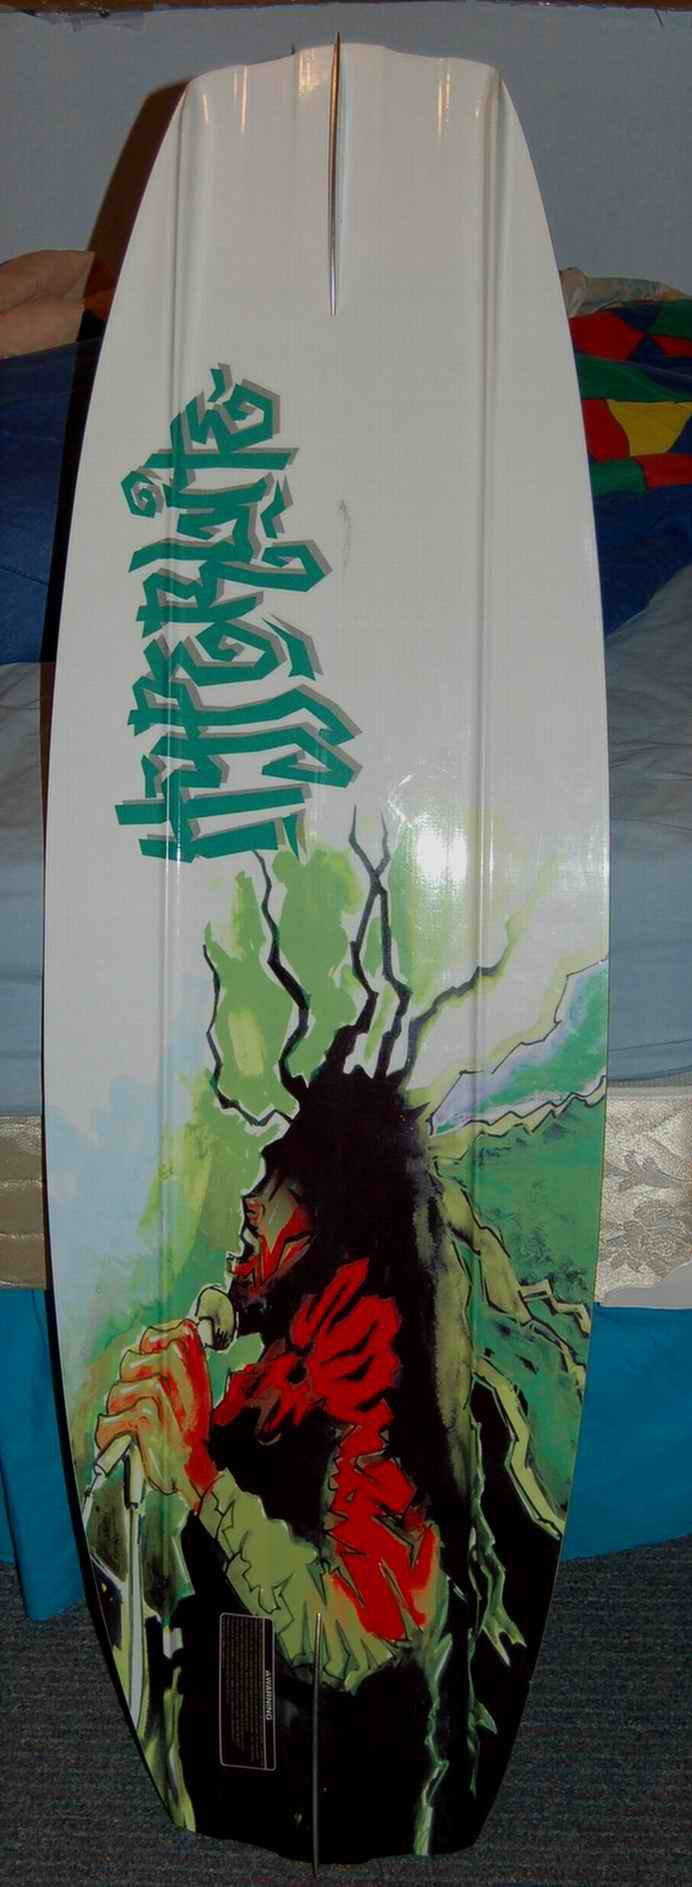 Bob Marley on the base of my Era wakeboard